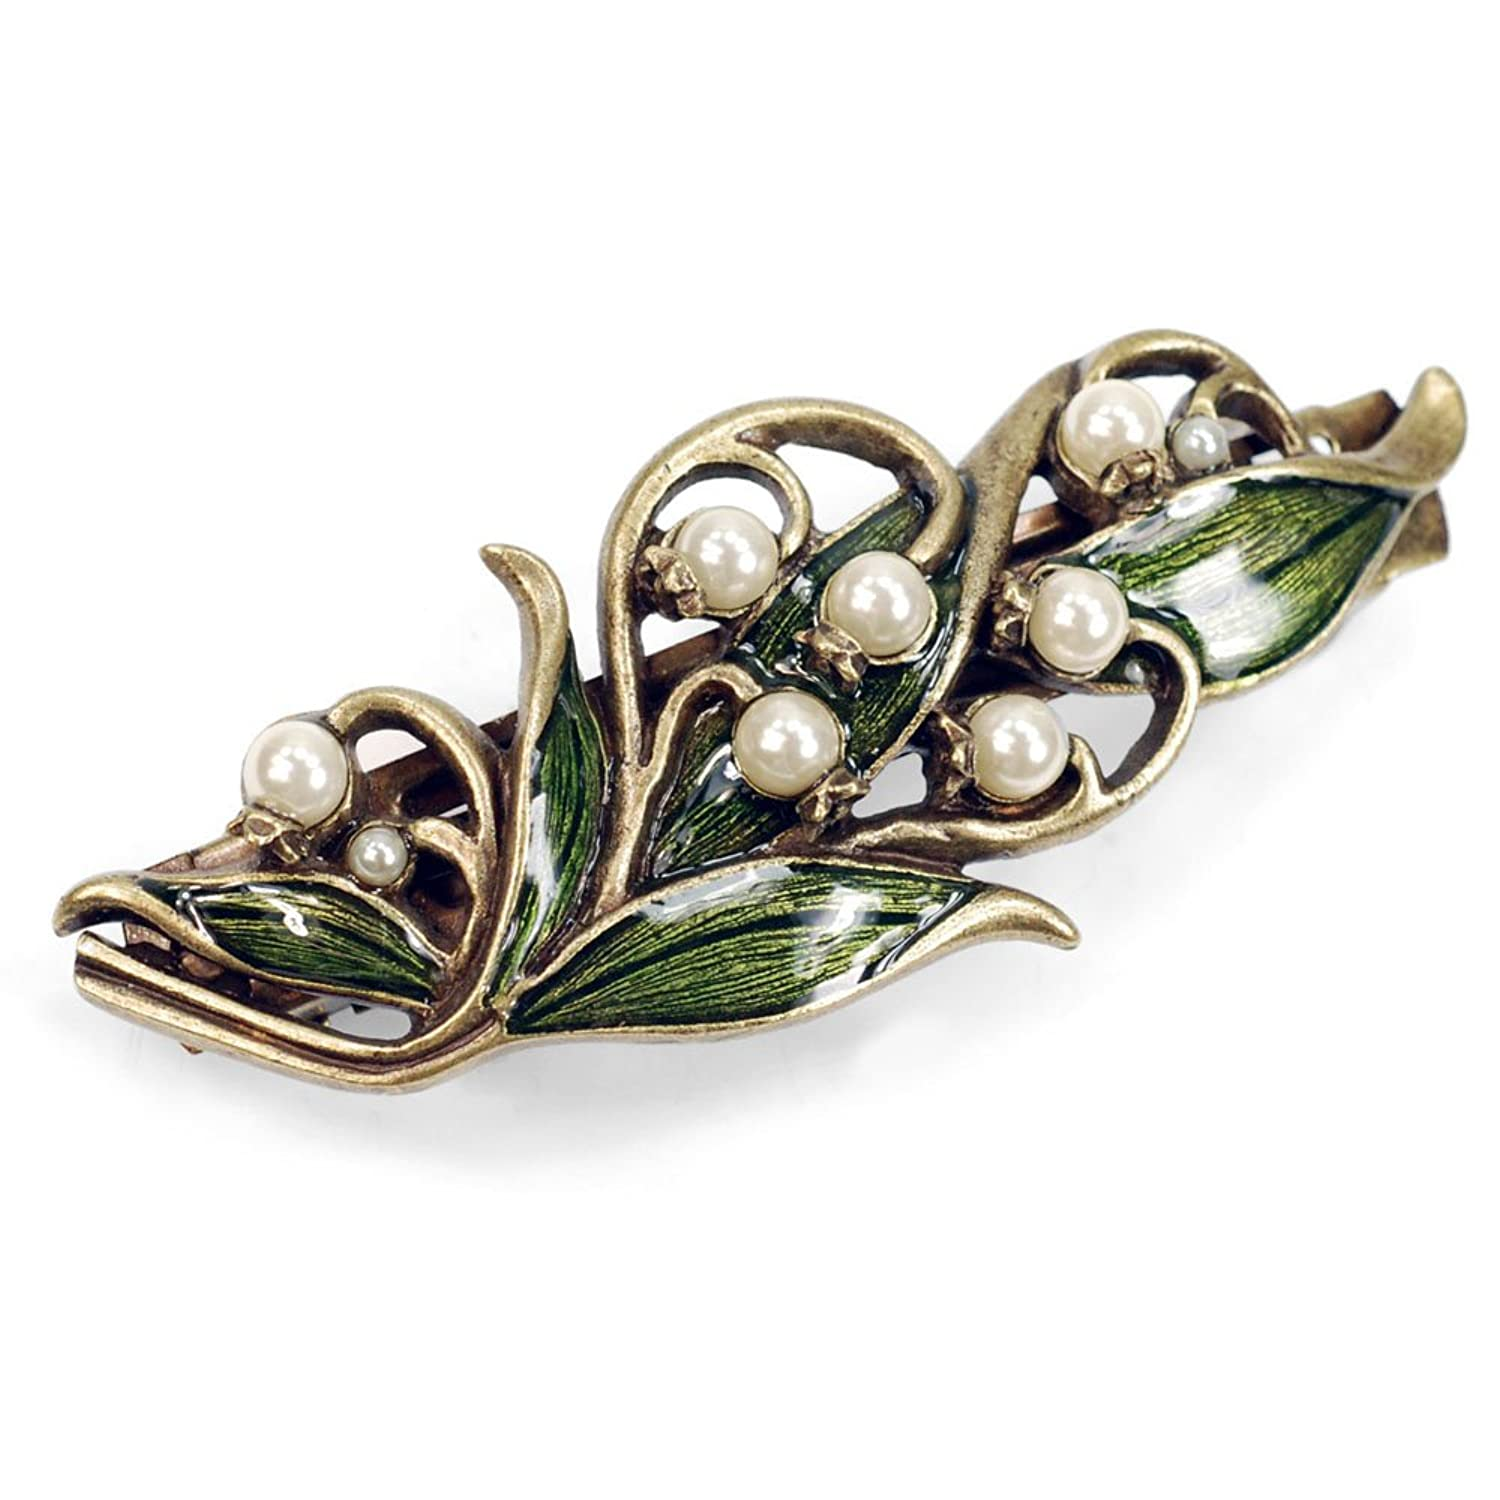 1940s Jewelry Styles and History Vintage Lily of the Valley Bridal Flower Wedding Hair Barrette Clip $39.00 AT vintagedancer.com